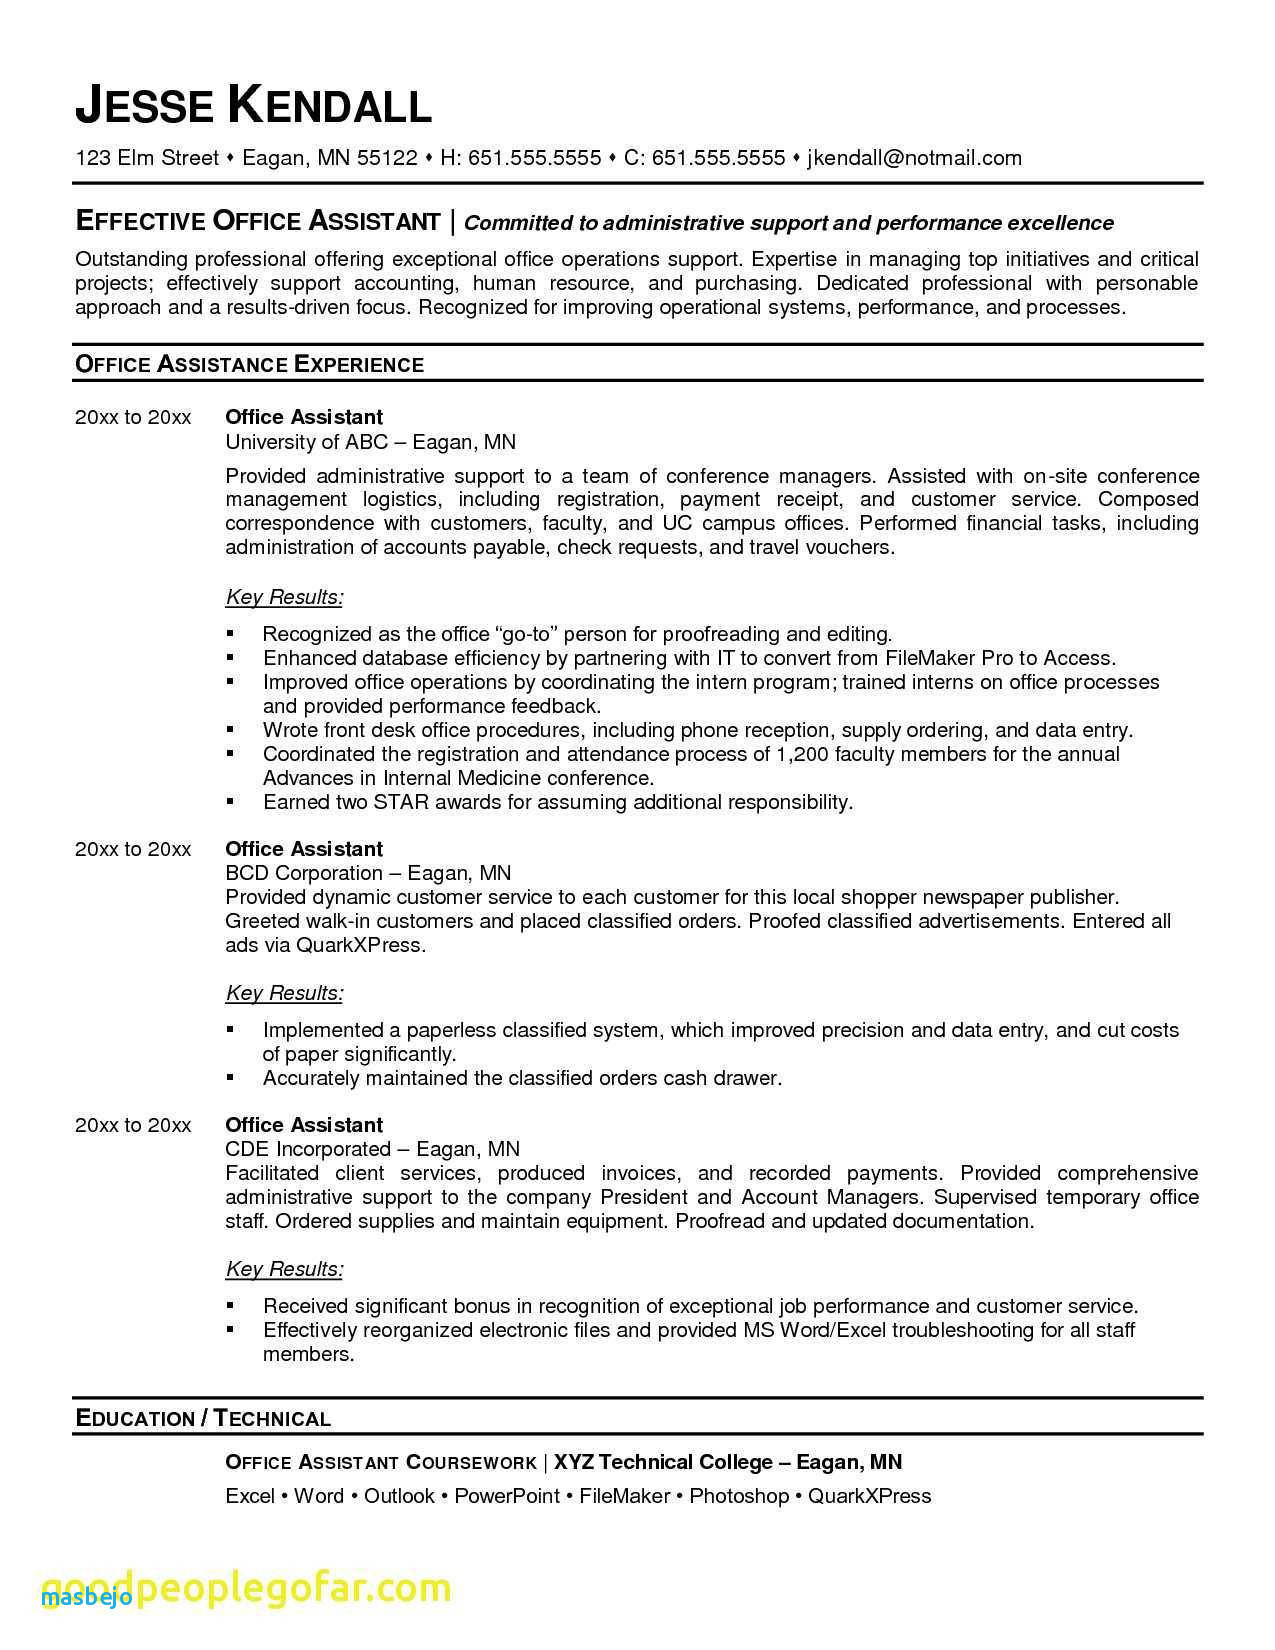 autotrader jobs resume Collection-Administrative assistant Resume Lovely Admin assistant Resume 10 Best Best Executive assistant Resume 3-p